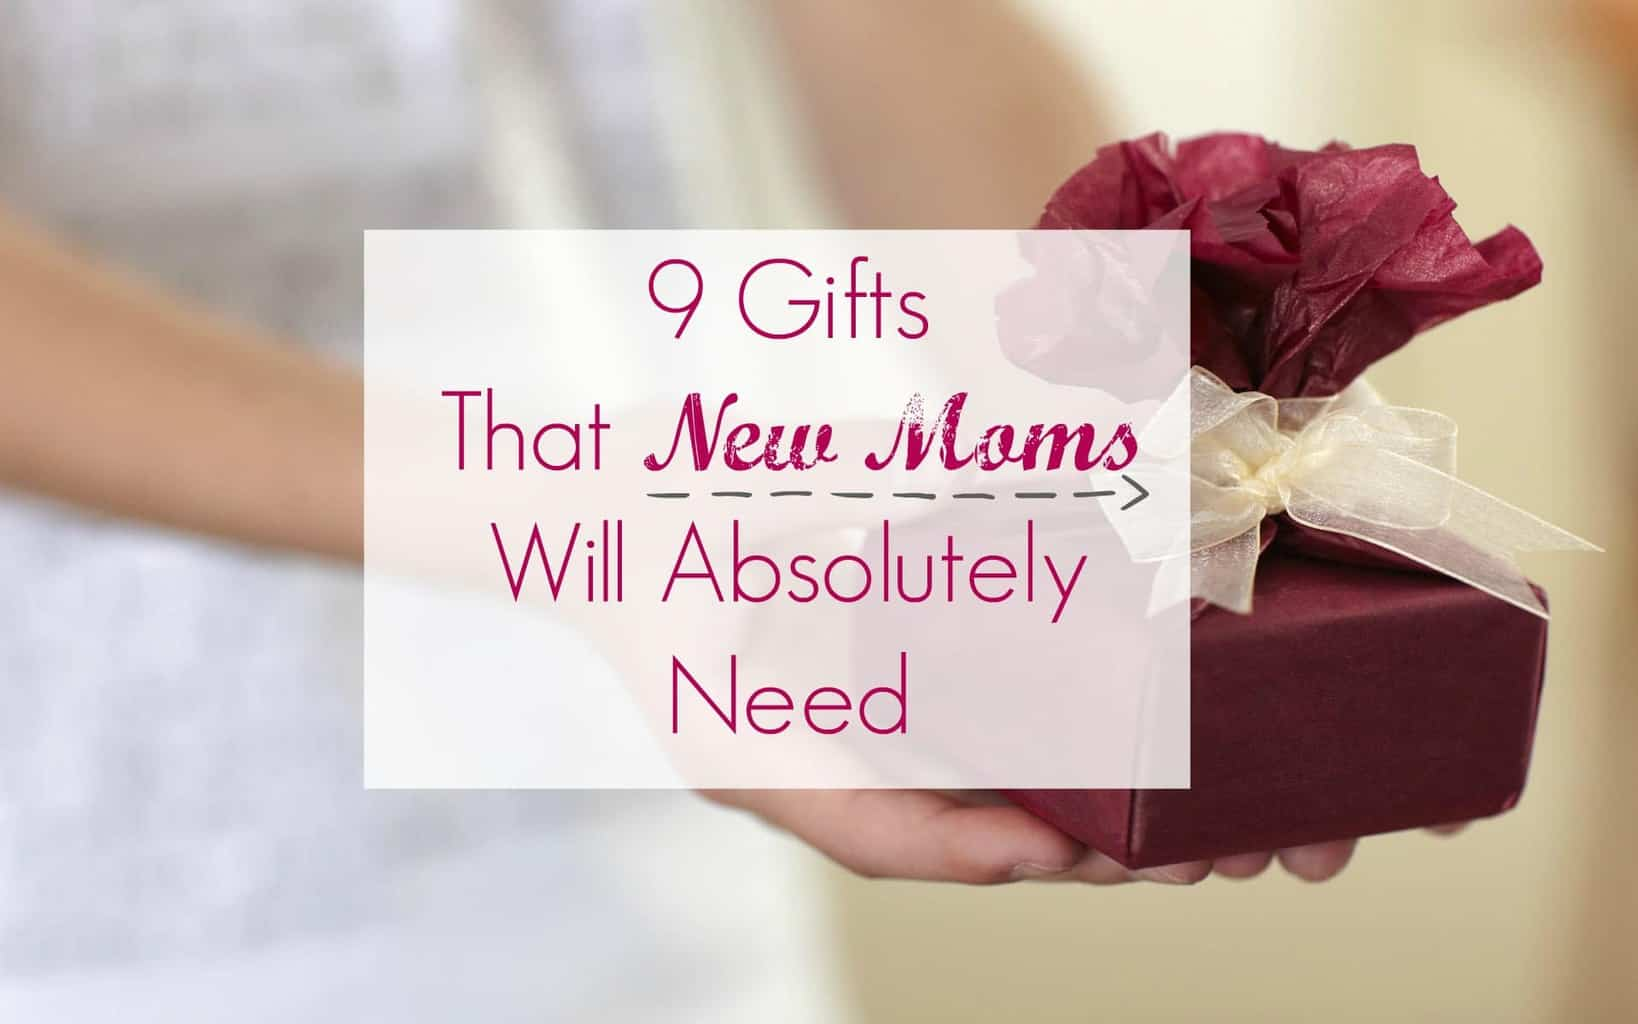 9 Best Gifts For New Moms From Husband